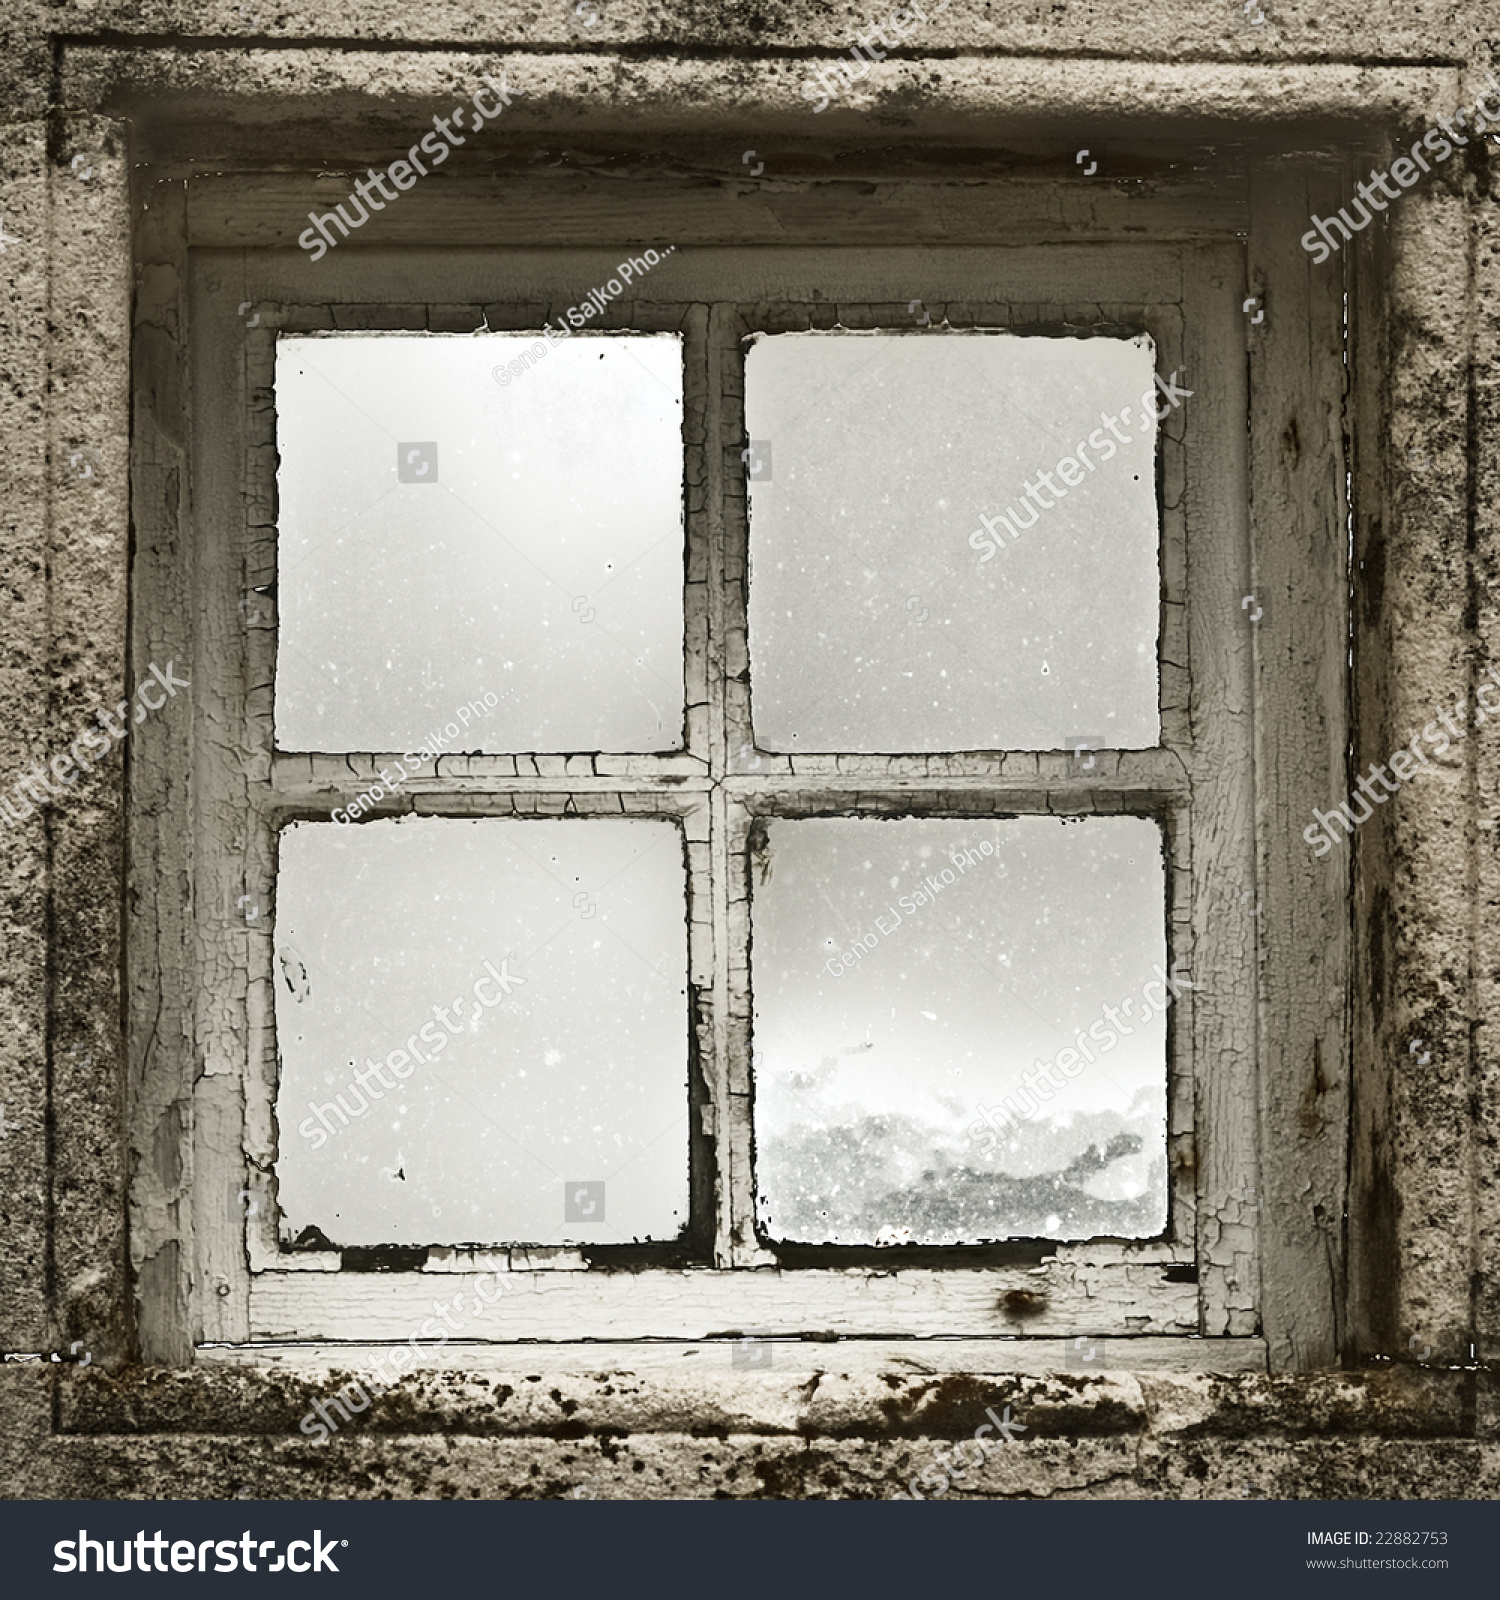 Cabins Out Of Old Windows : Old window cracked paint inside looking stock photo